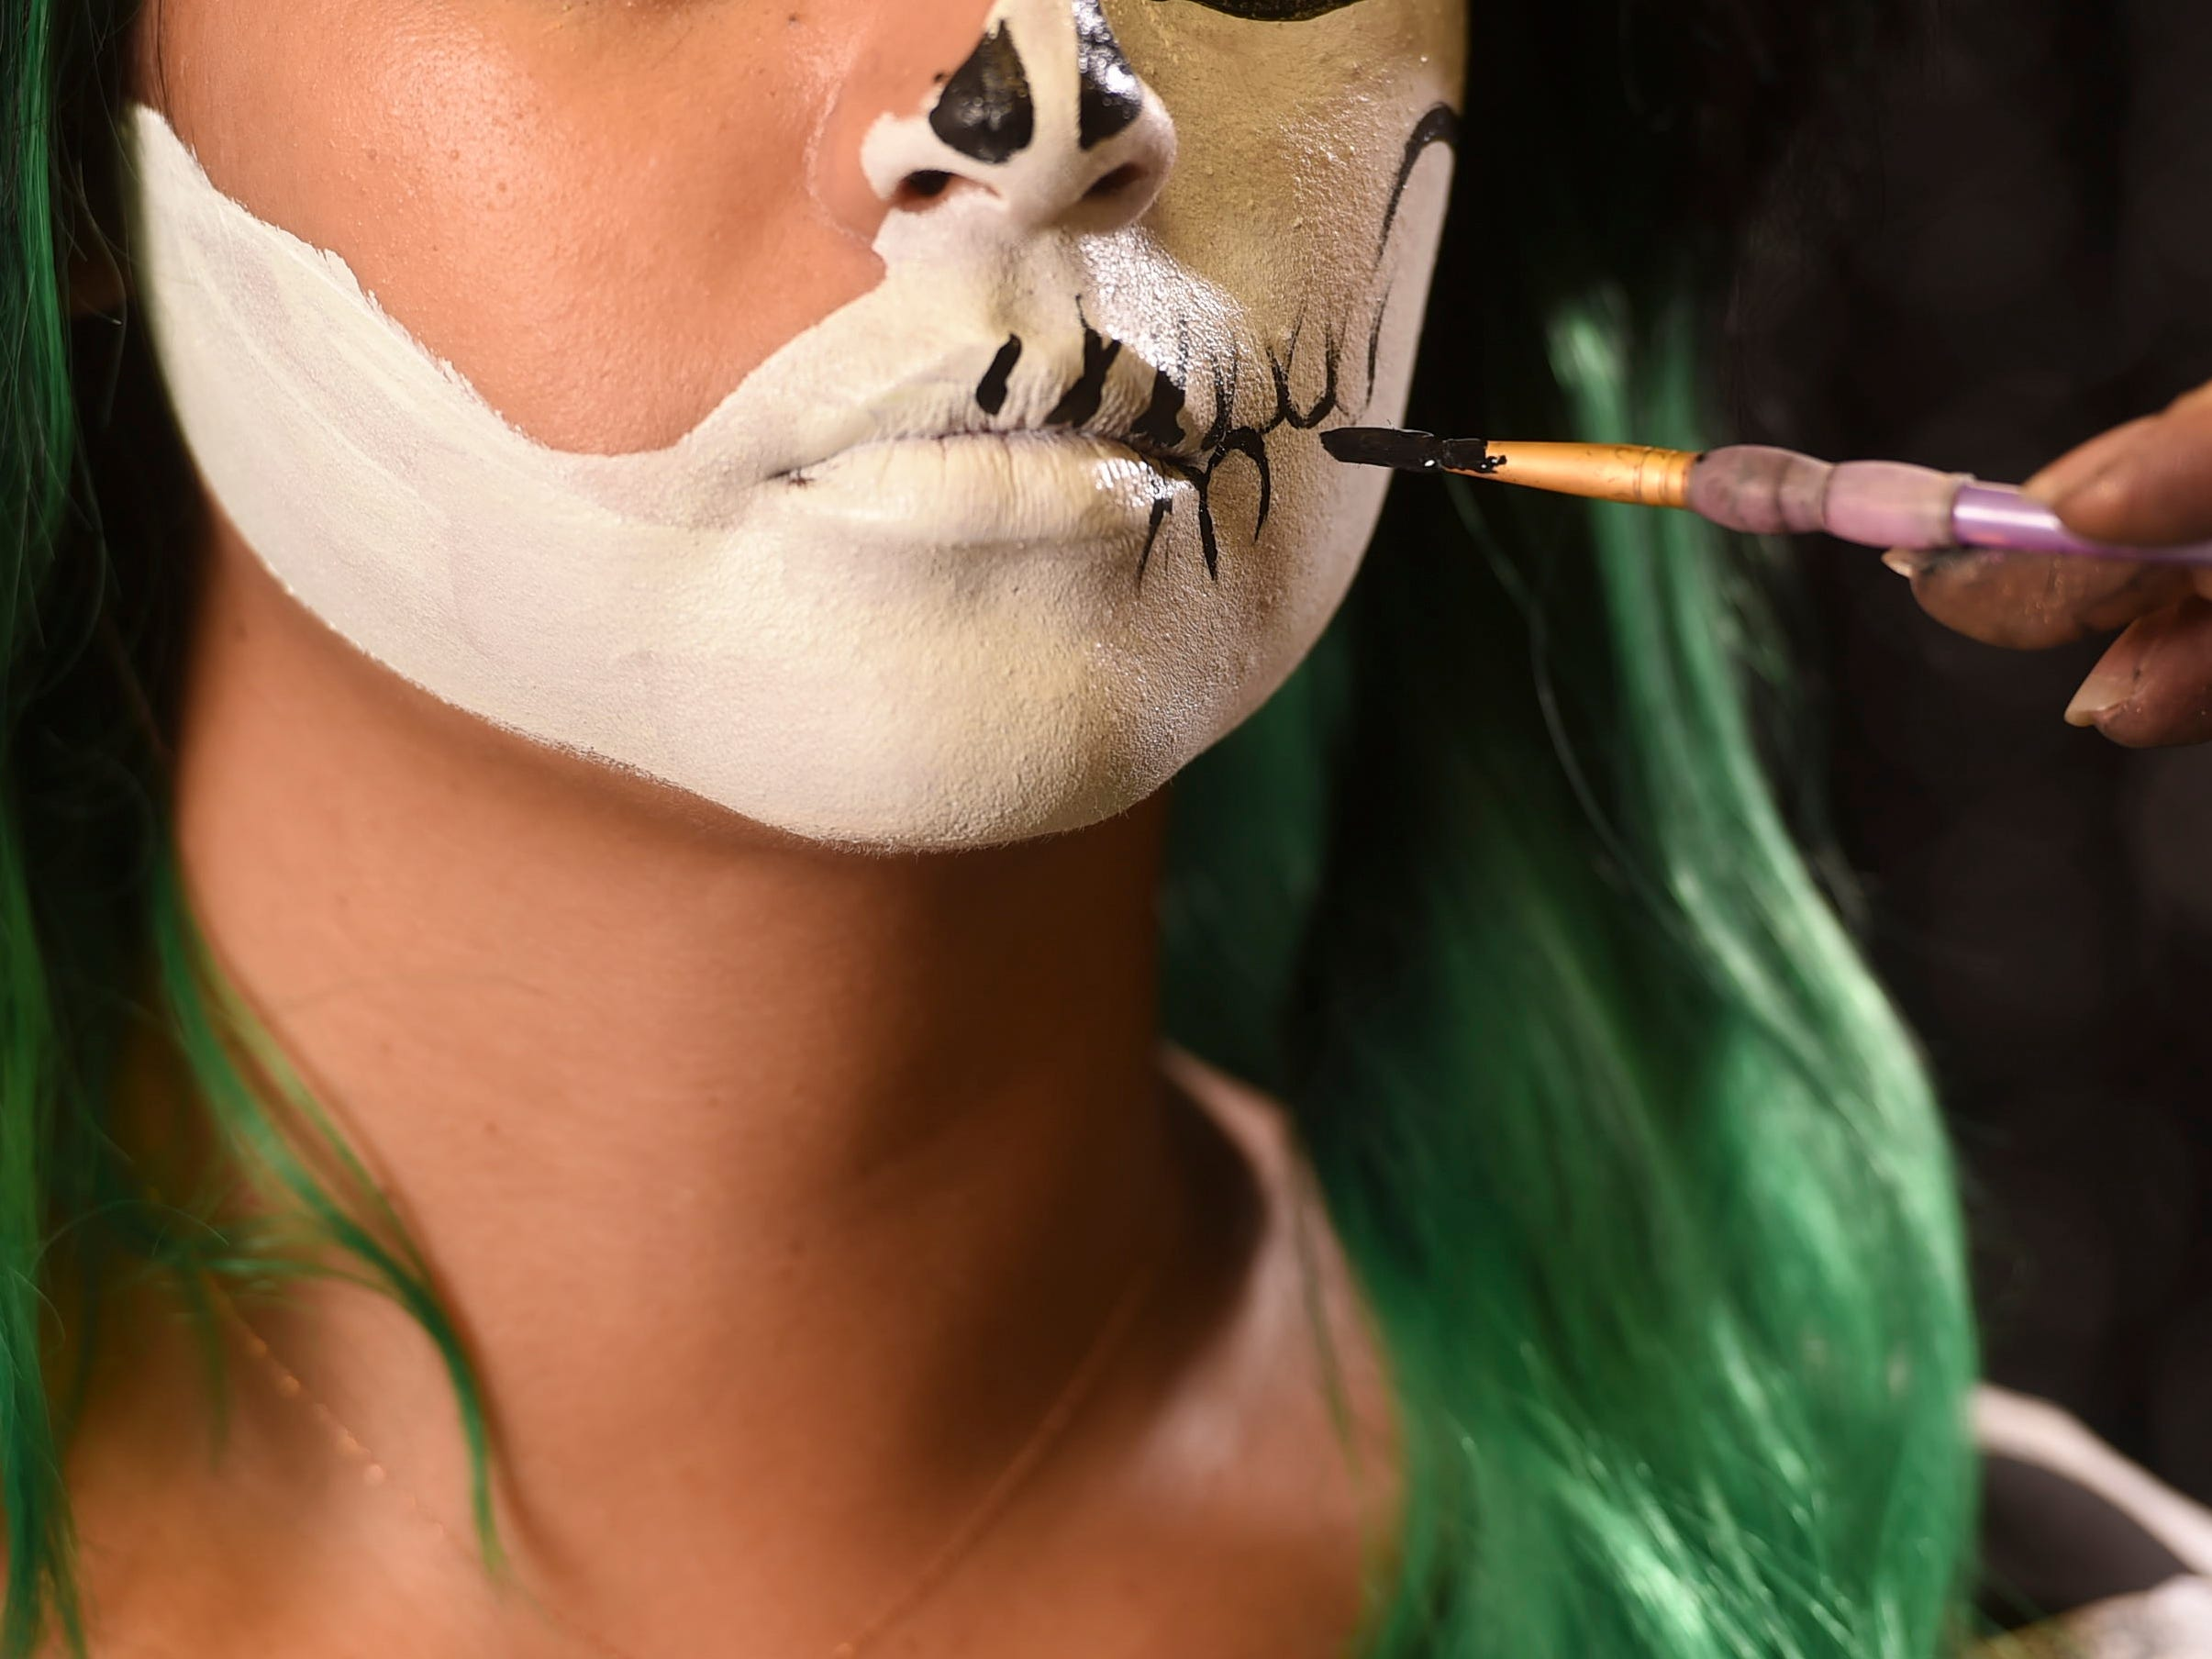 With black face paint, outline your skull eye and teeth.